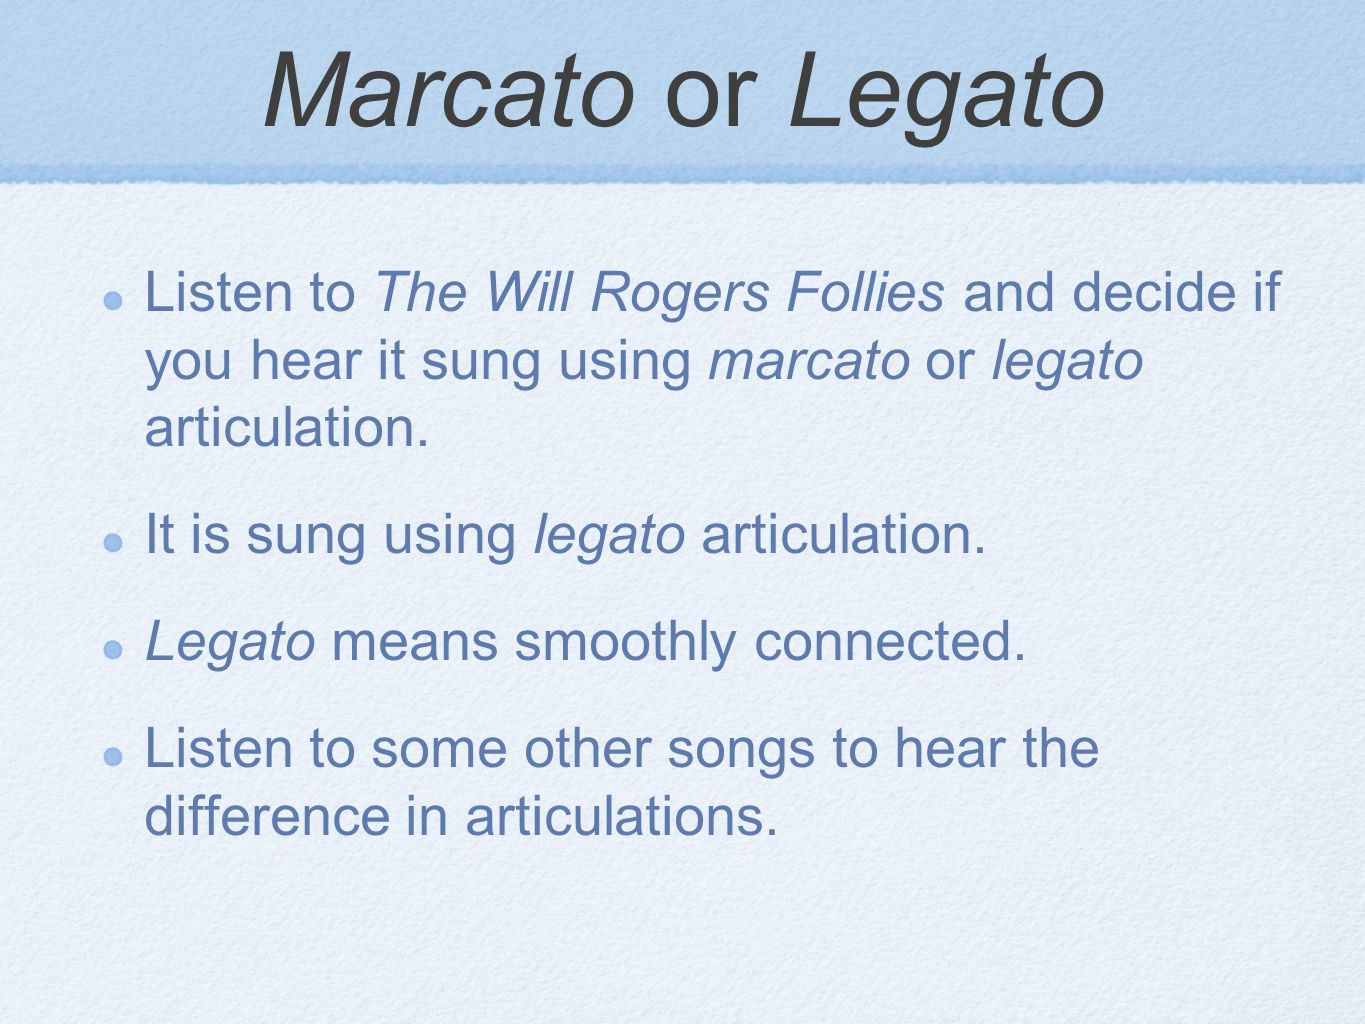 Marcato or Legato Listen to The Will Rogers Follies and decide if you hear it sung using marcato or legato articulation. It is sung using legato artic